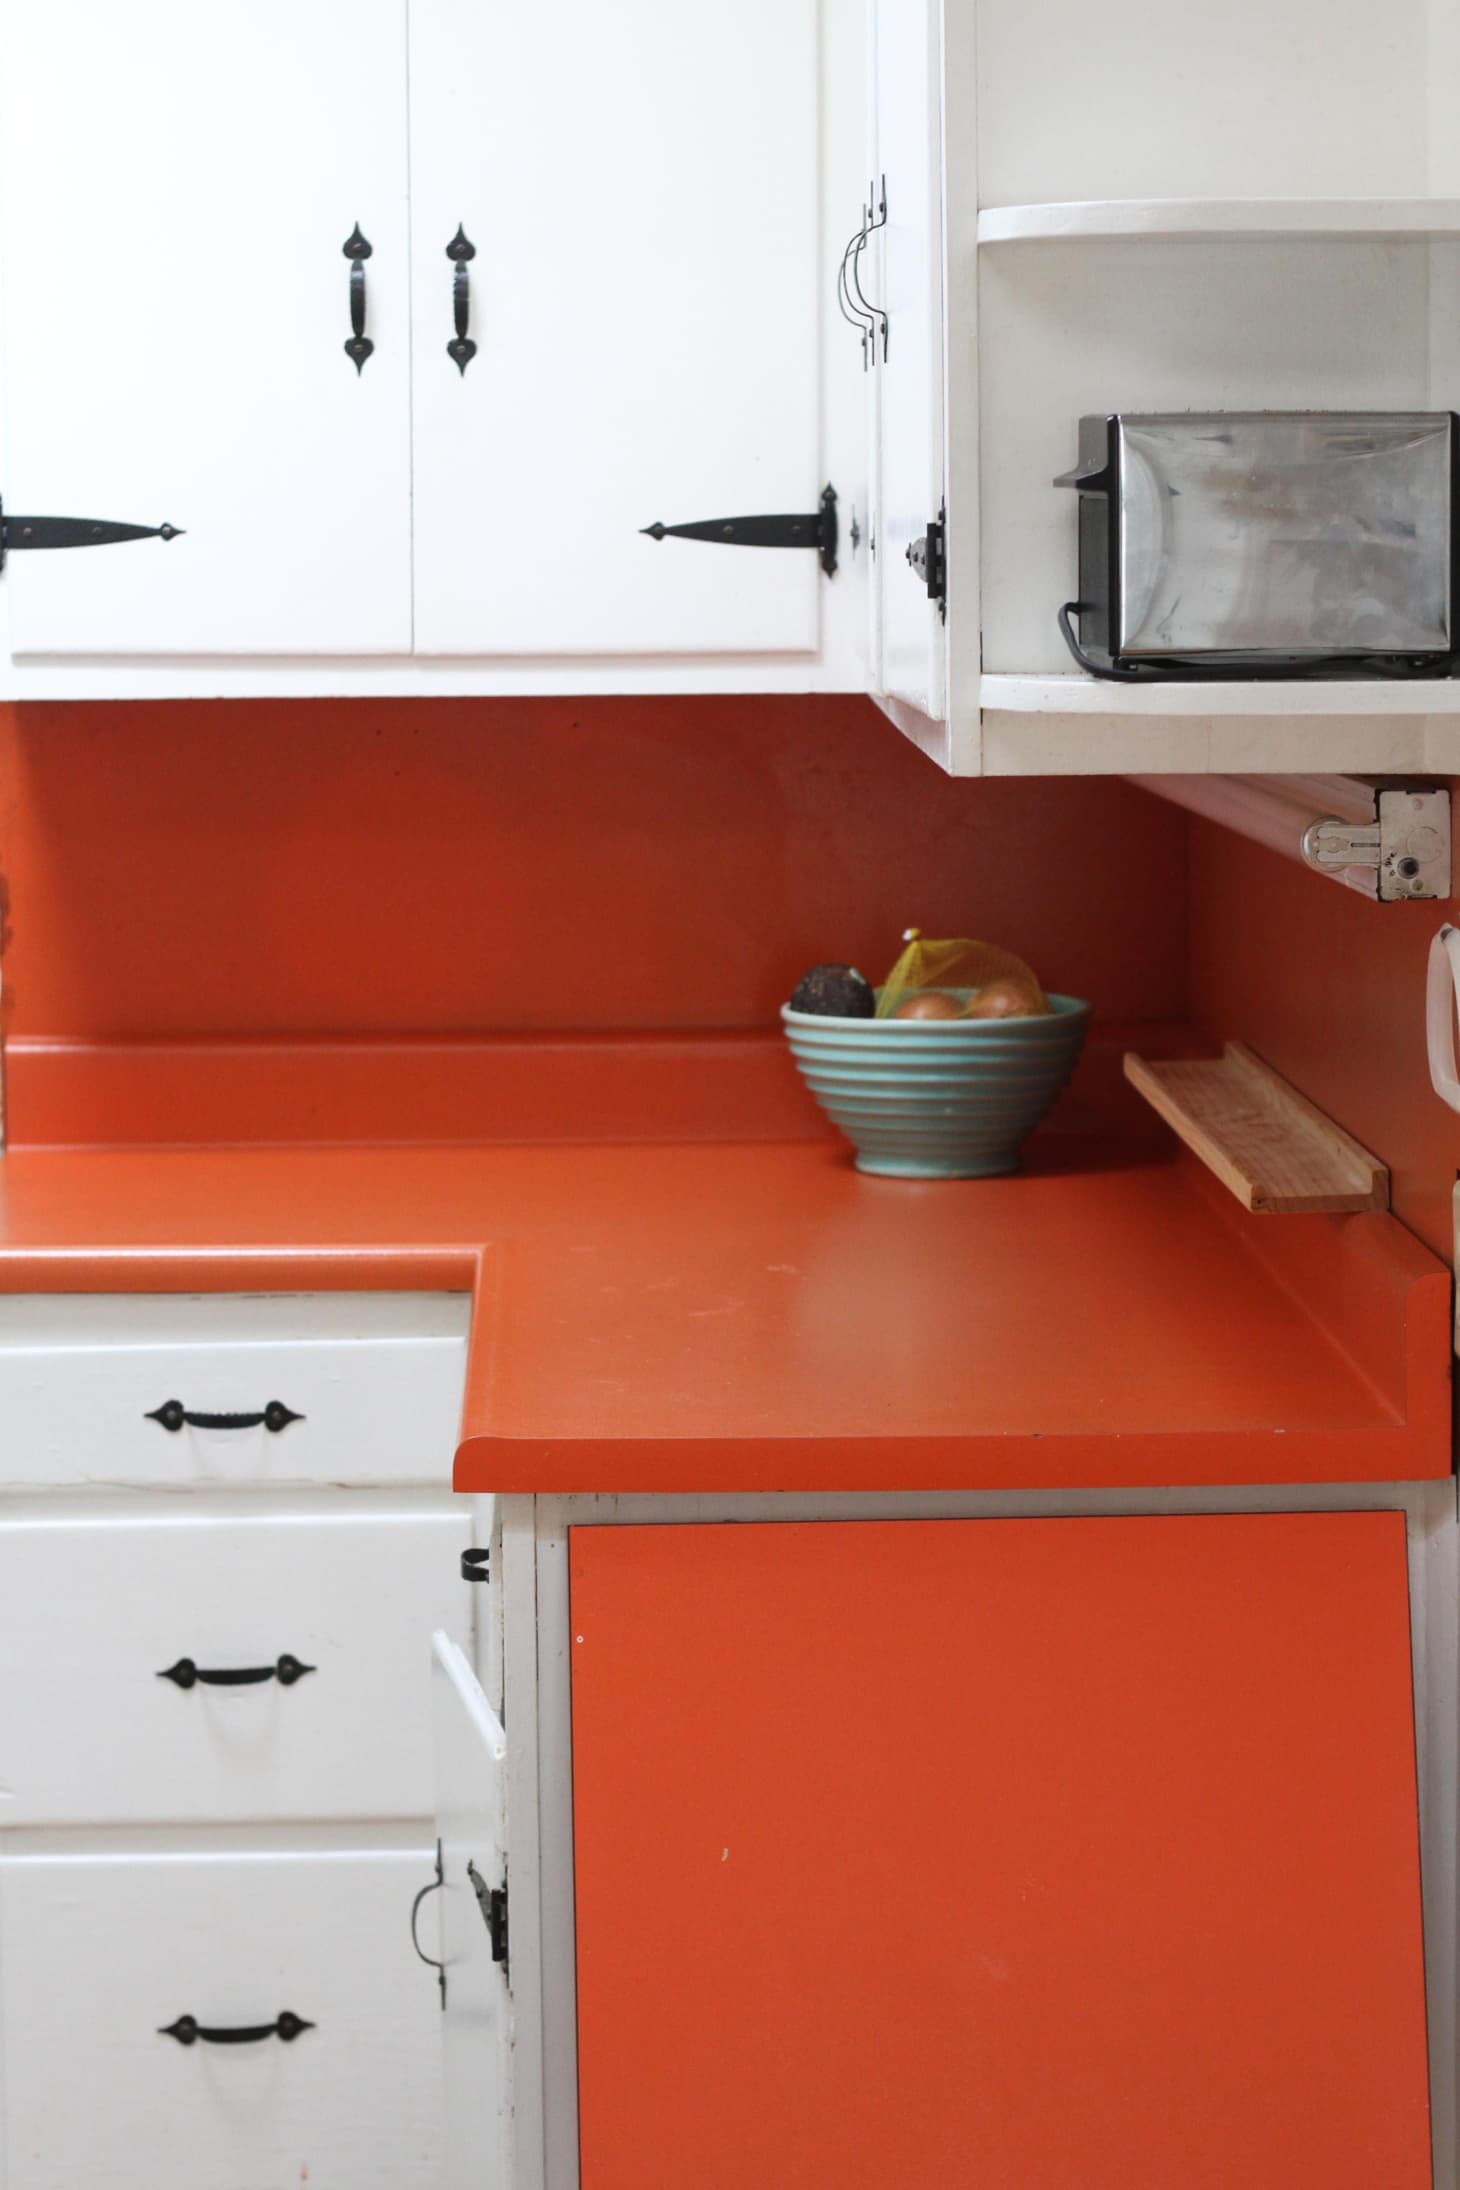 Tutorial: How to Paint Laminate Countertops with a Kit